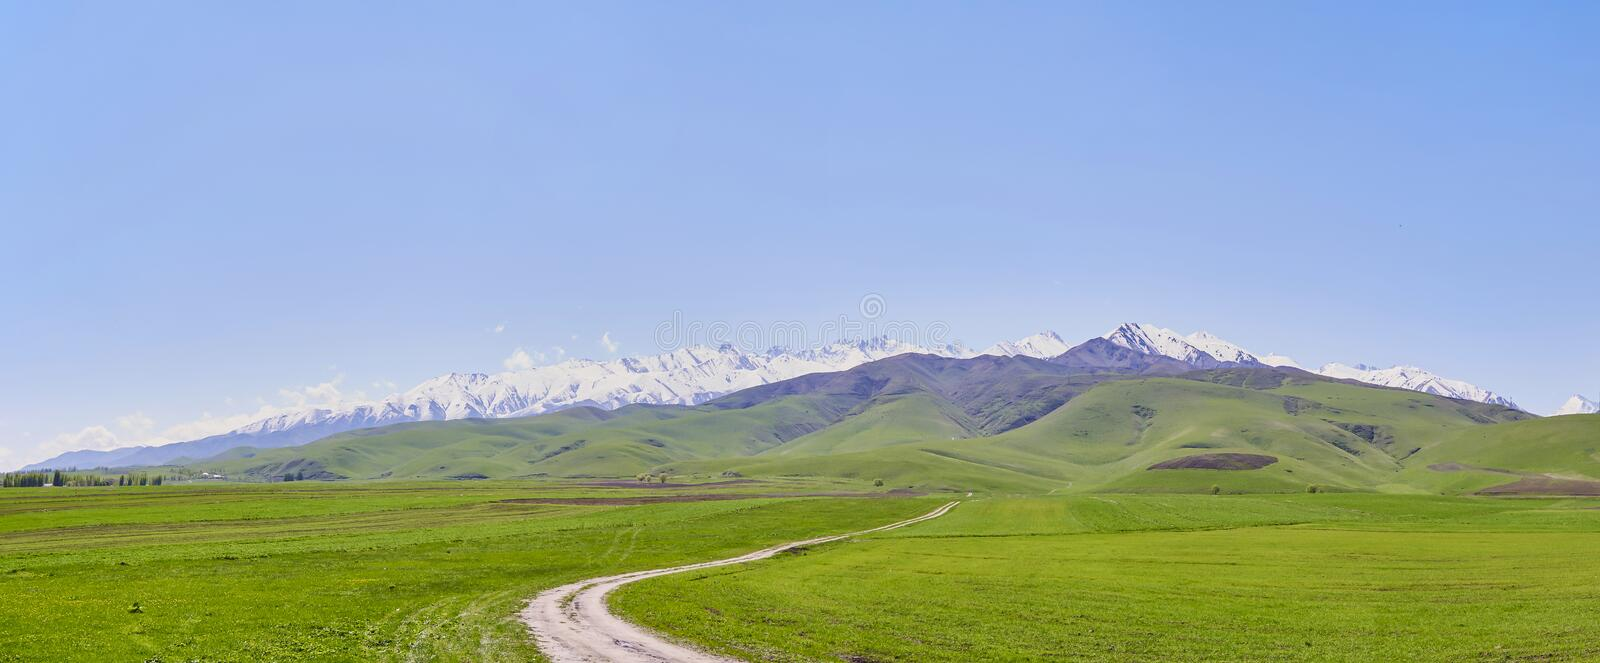 Panorama, mountain landscape, in the foreground young green grass against the backdrop of a mountain range with snowy peaks stock photos